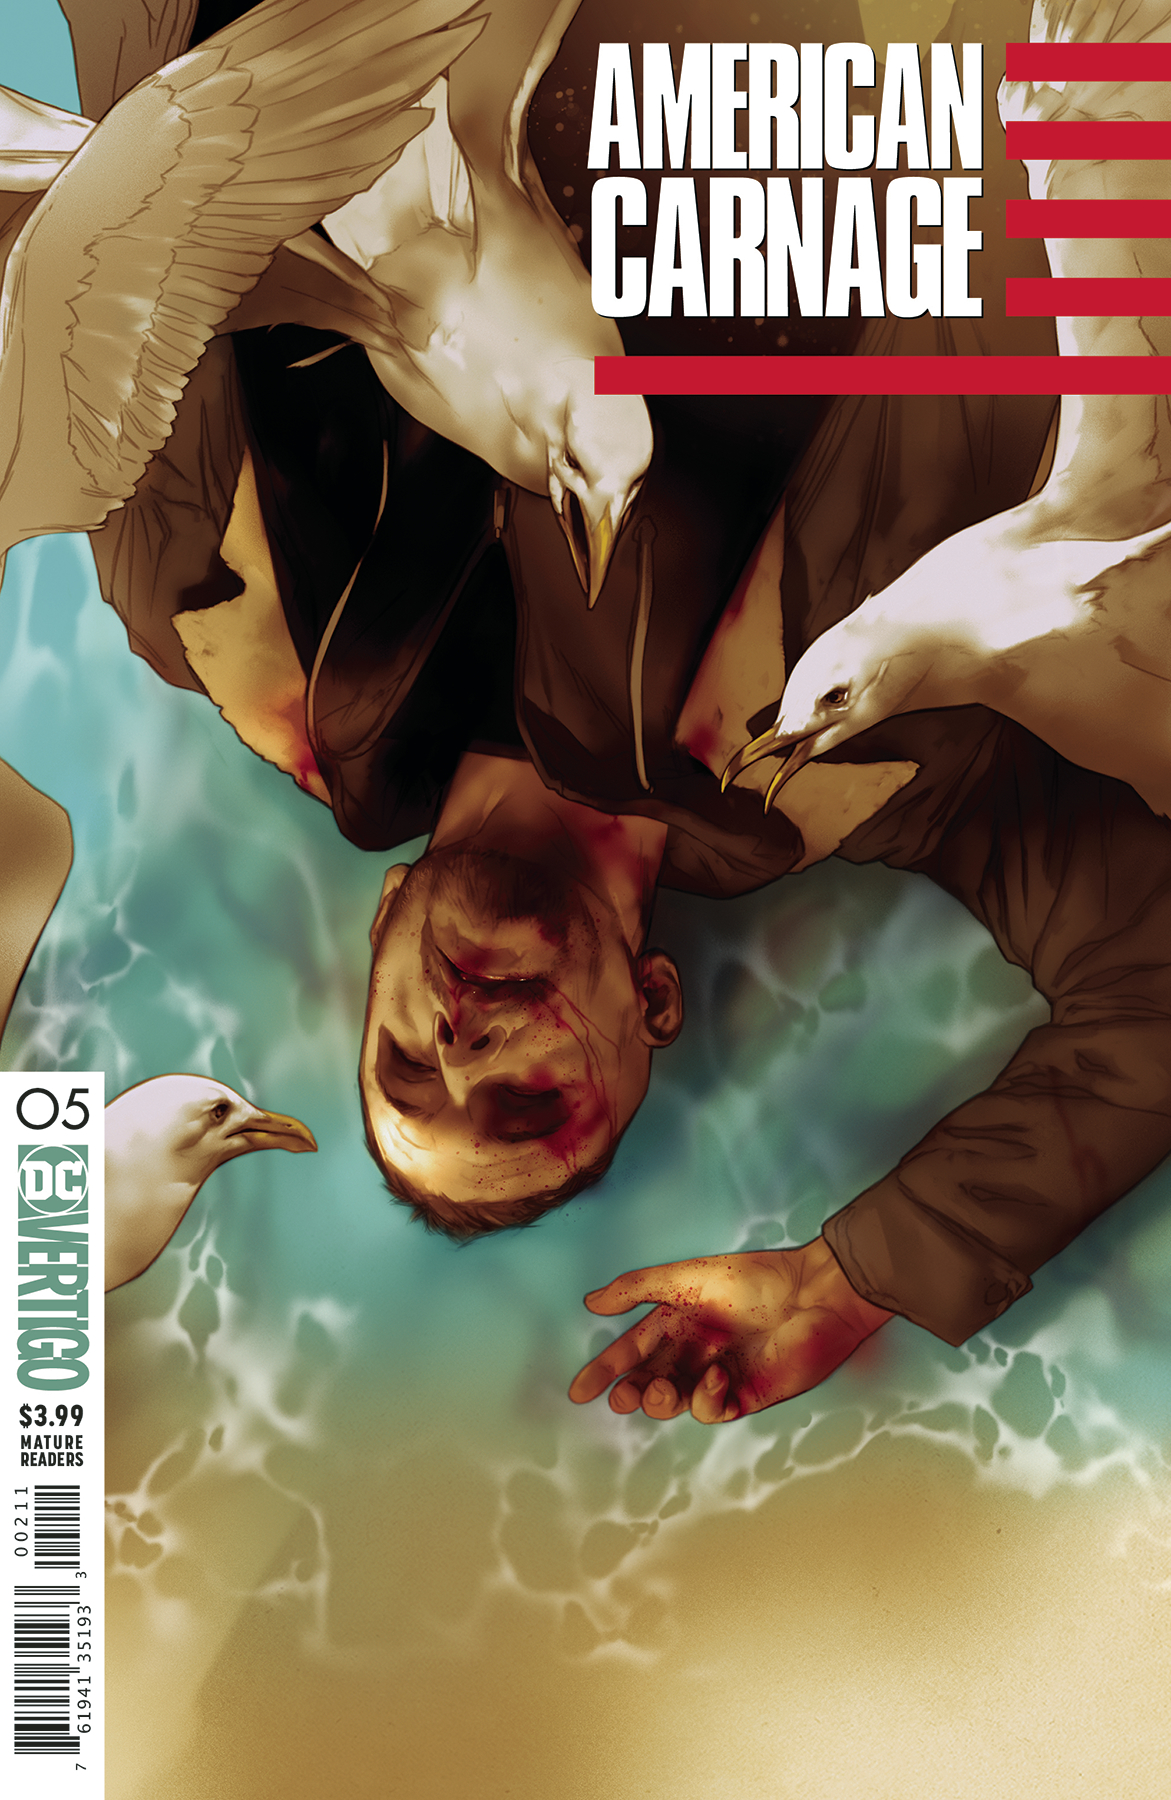 AMERICAN CARNAGE #5 (MR)